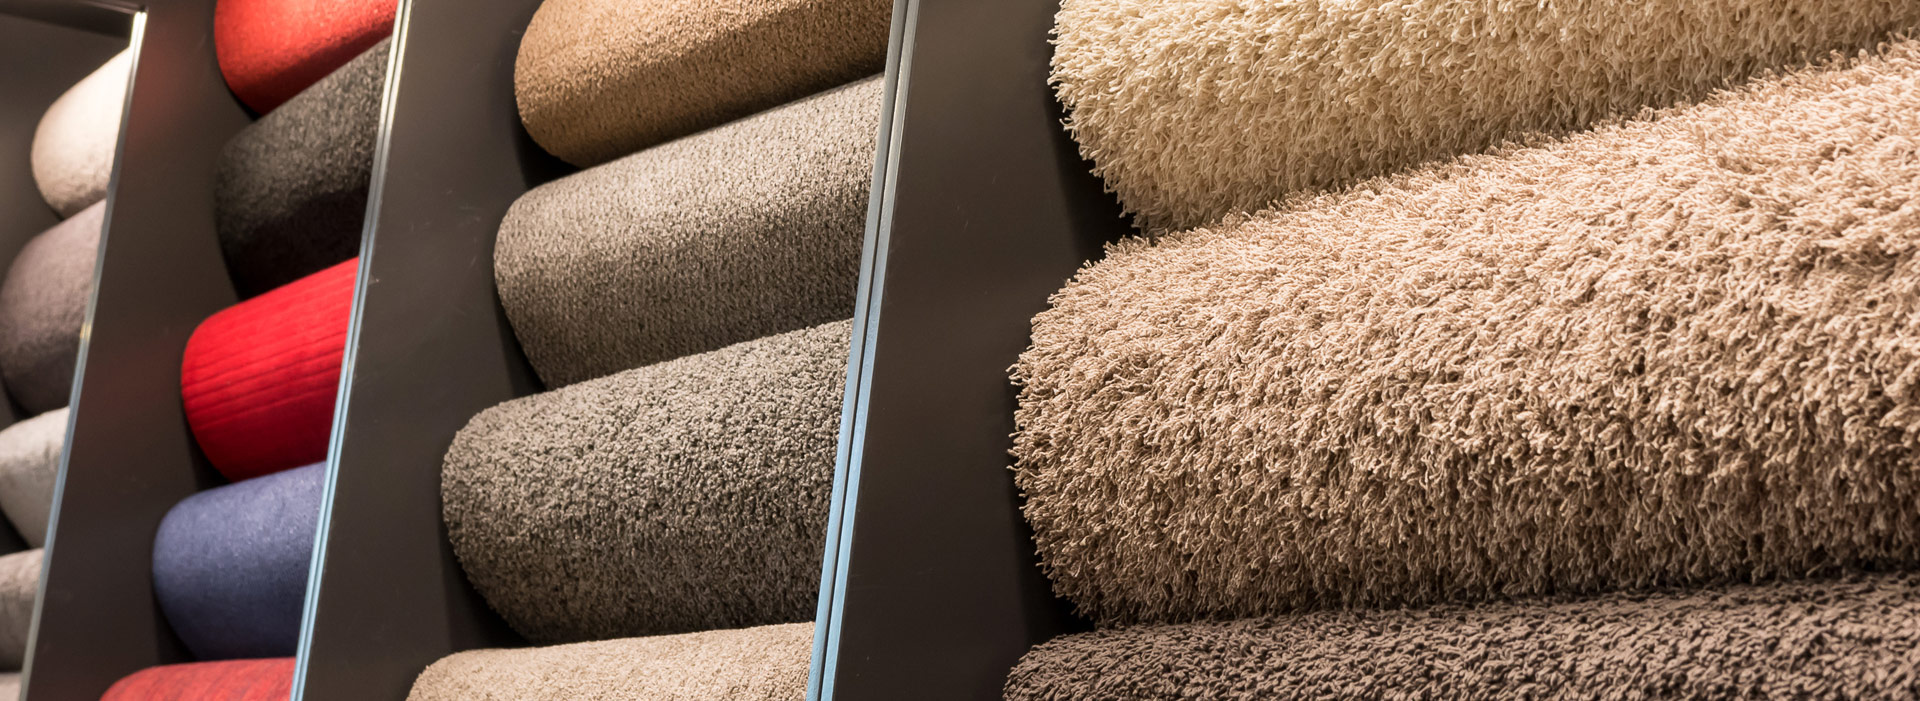 Carpet Range slide